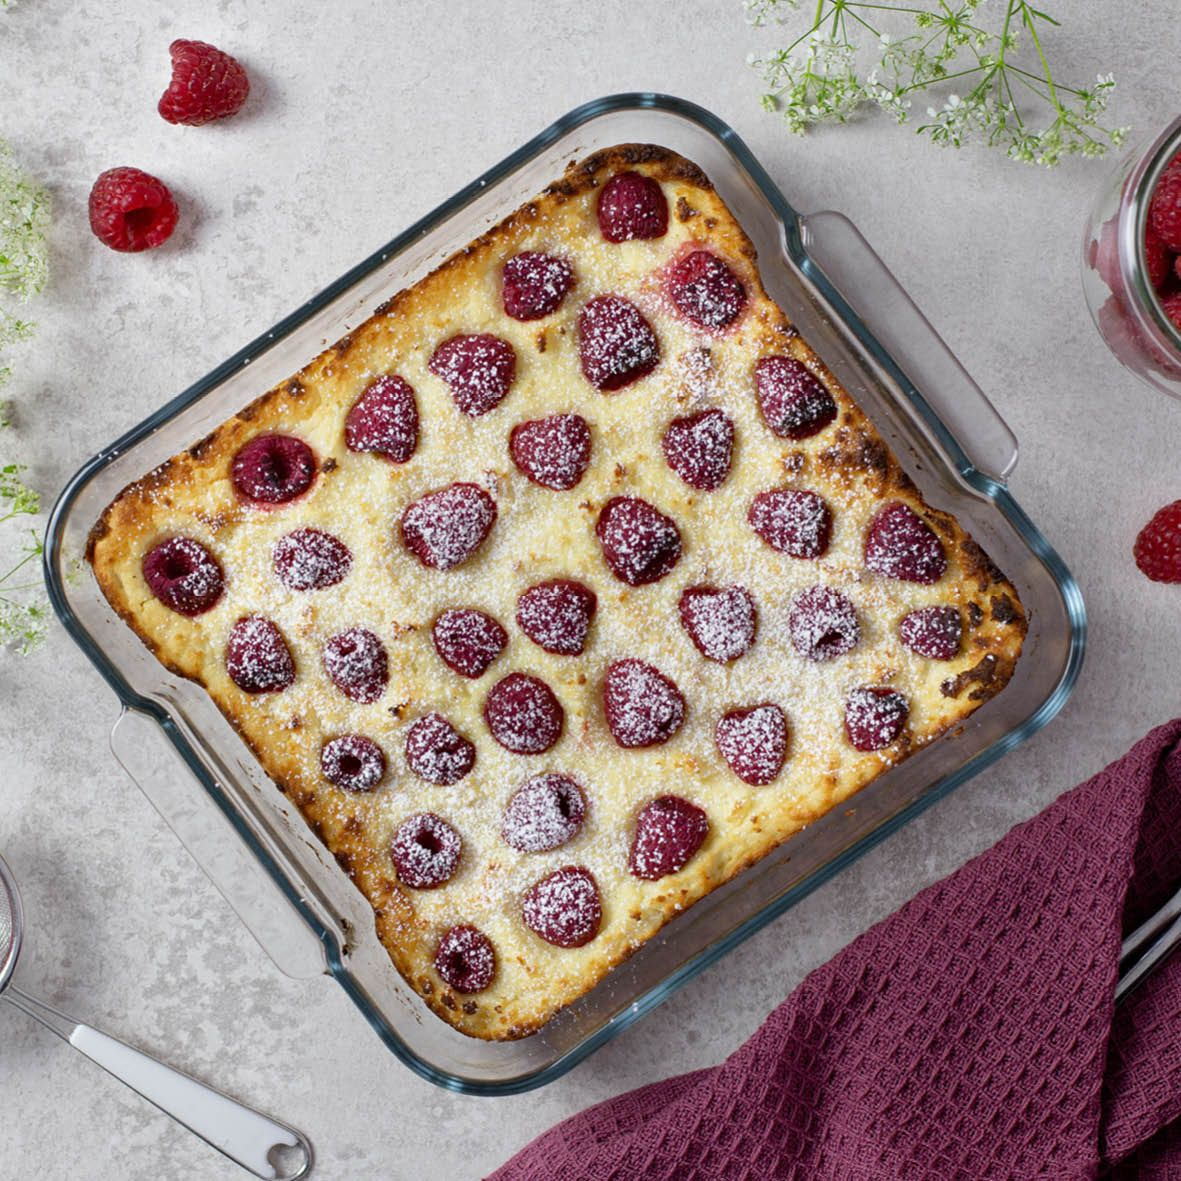 Raspberry_and_White_Chocolate_Pudding.jpg